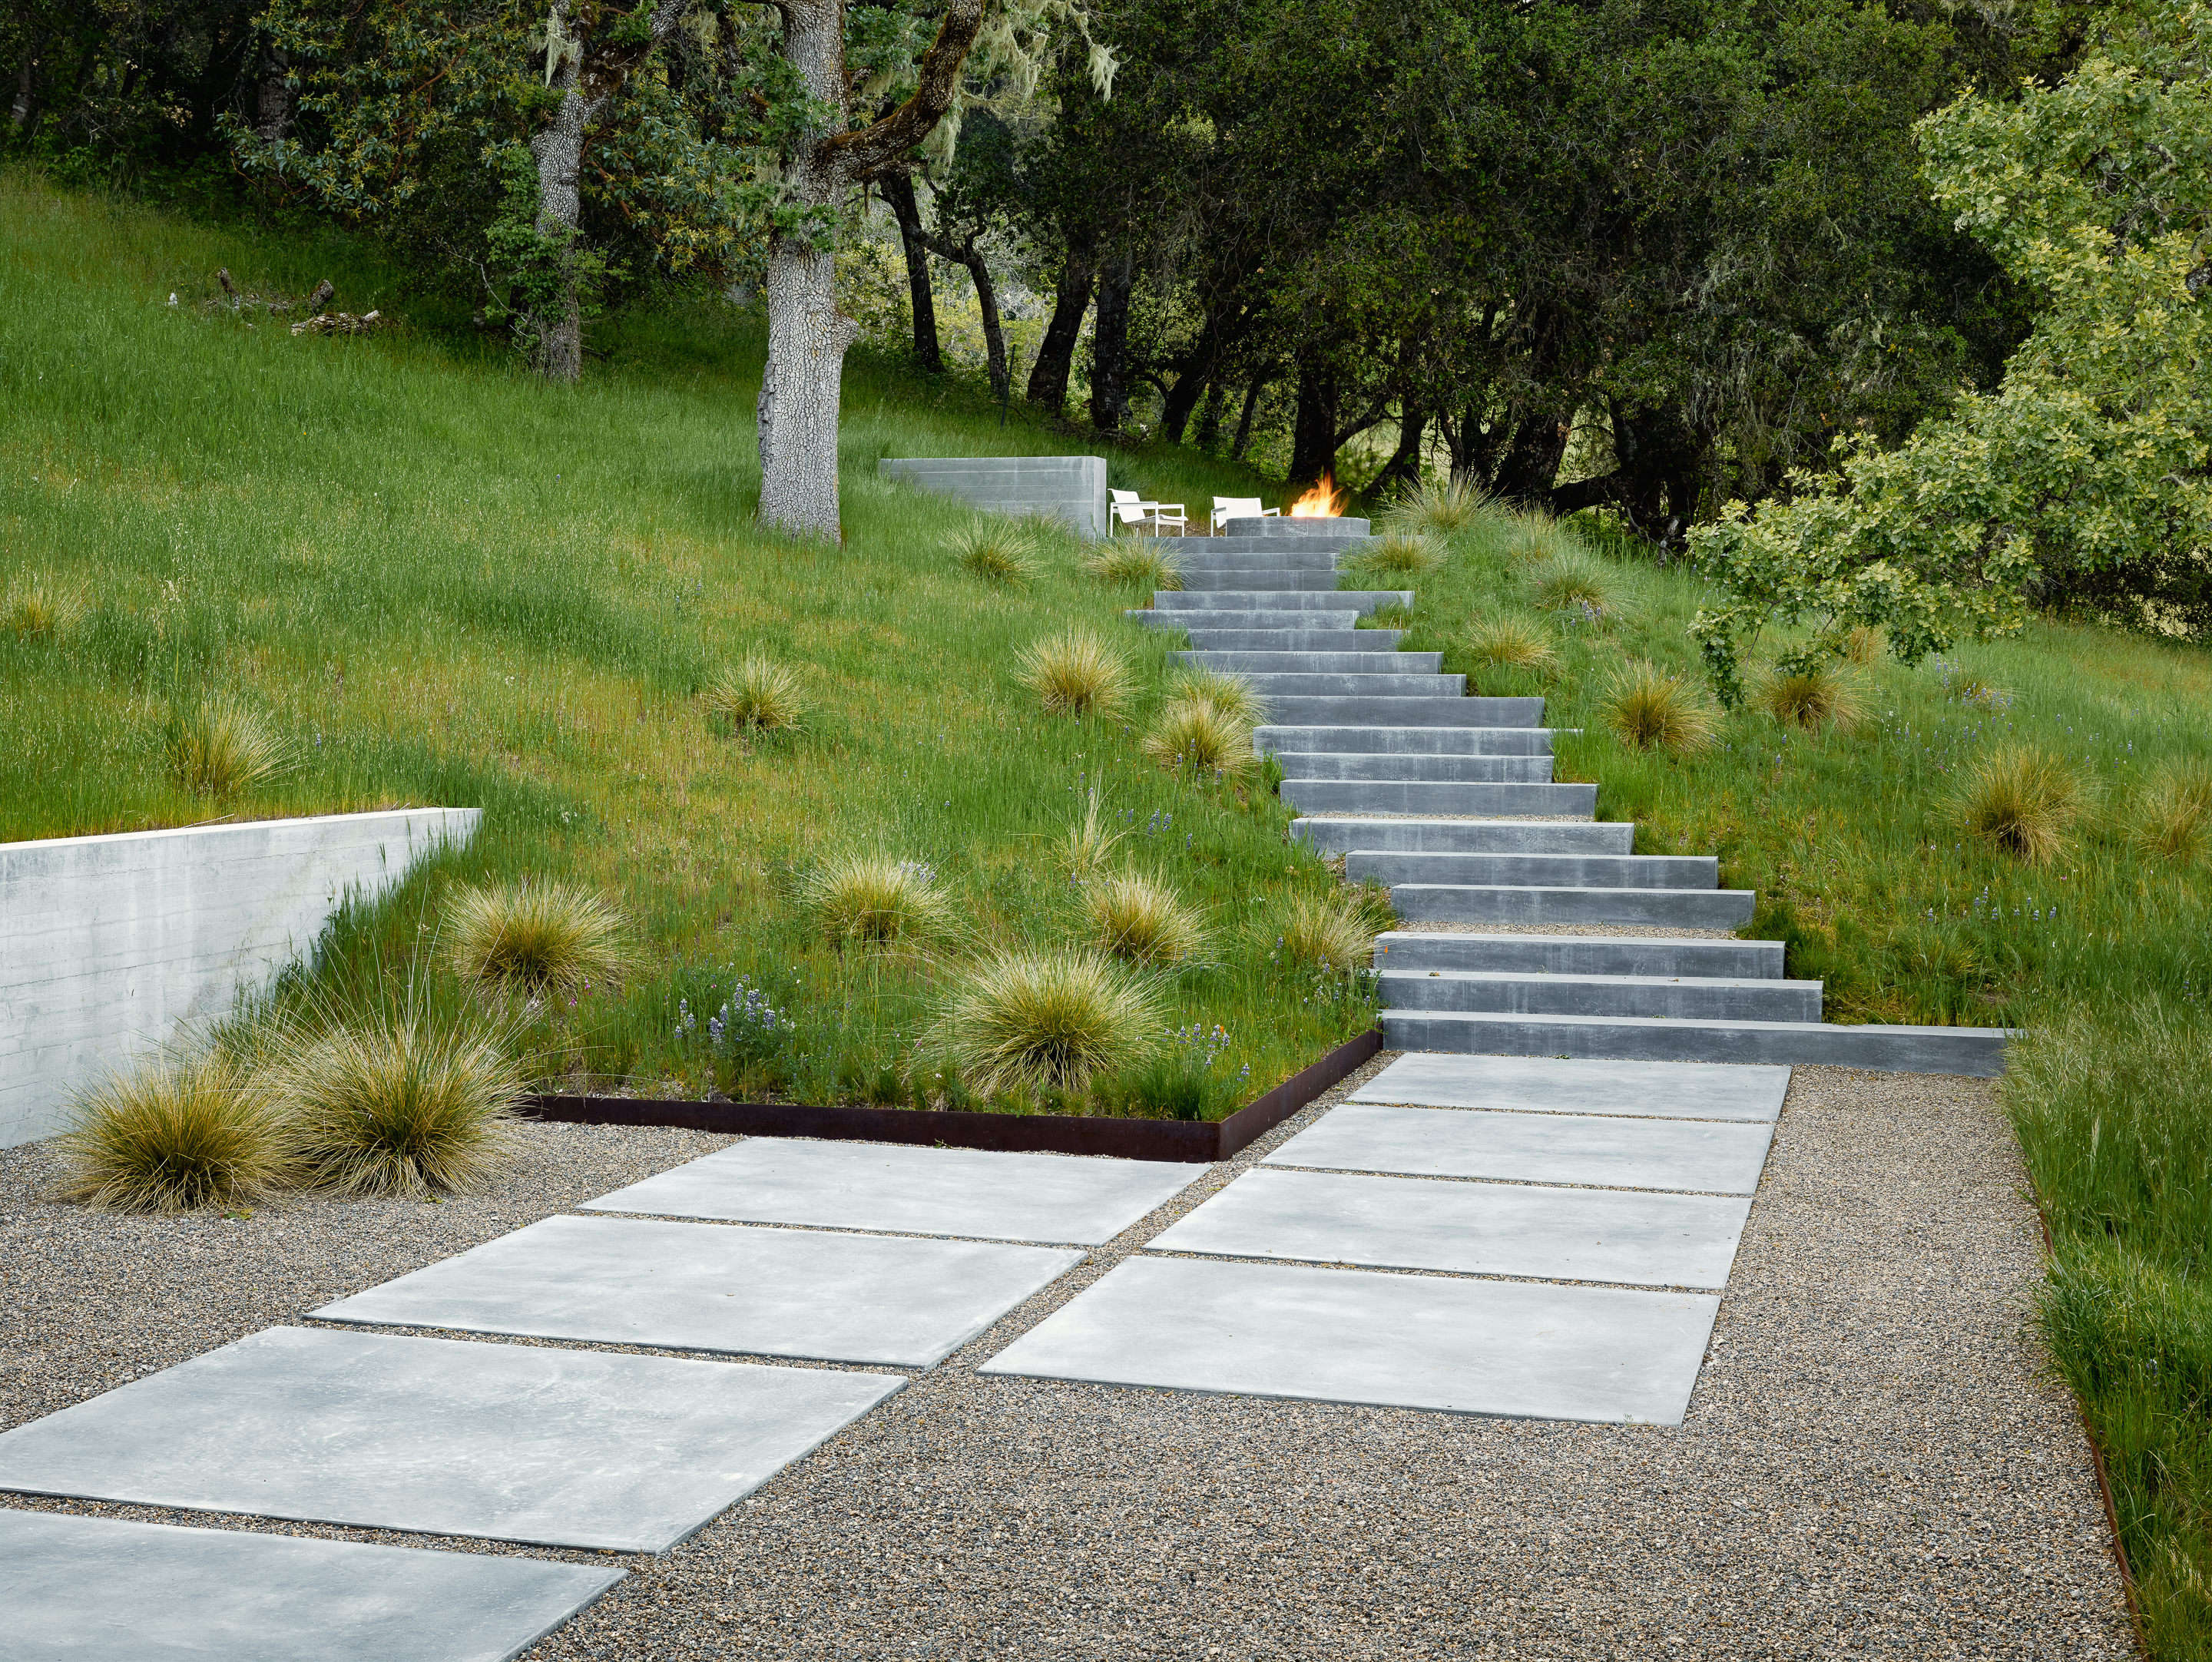 Landscape Architect Bernard Trainor Chose U201cSierra Tanu201d Gravel To Temper The  Bright Sunlight In